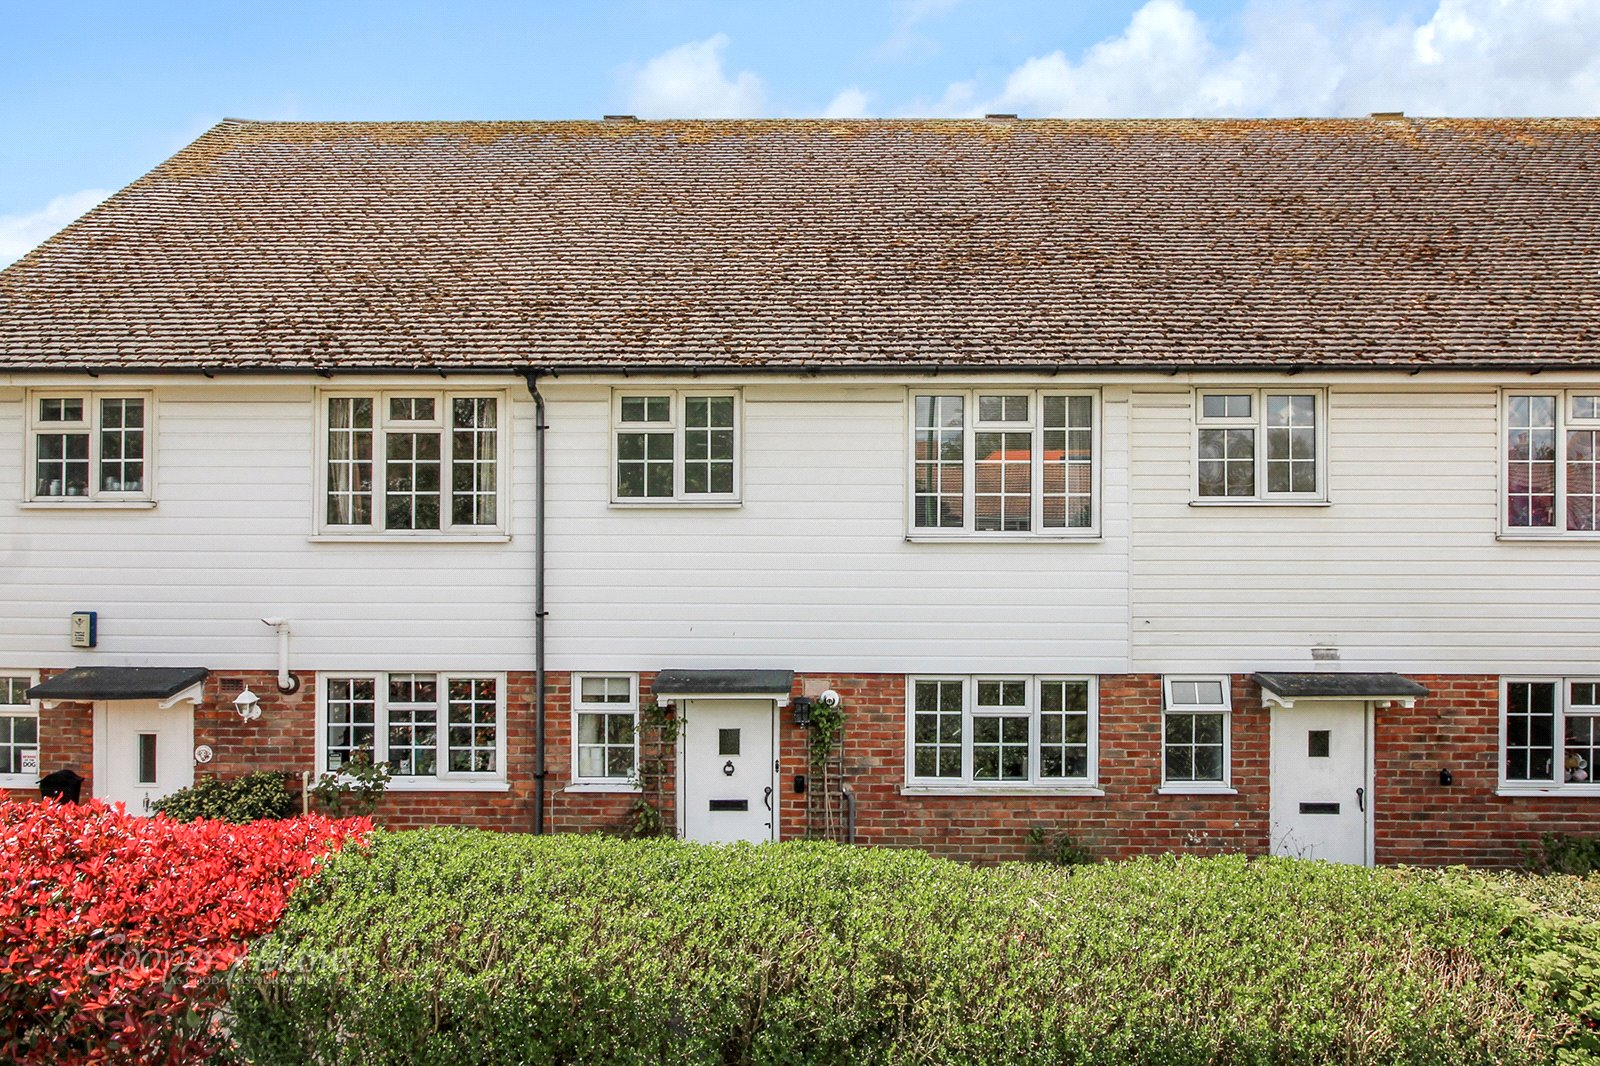 2 bed house for sale in The Willows, Station Road, Rustington, BN16